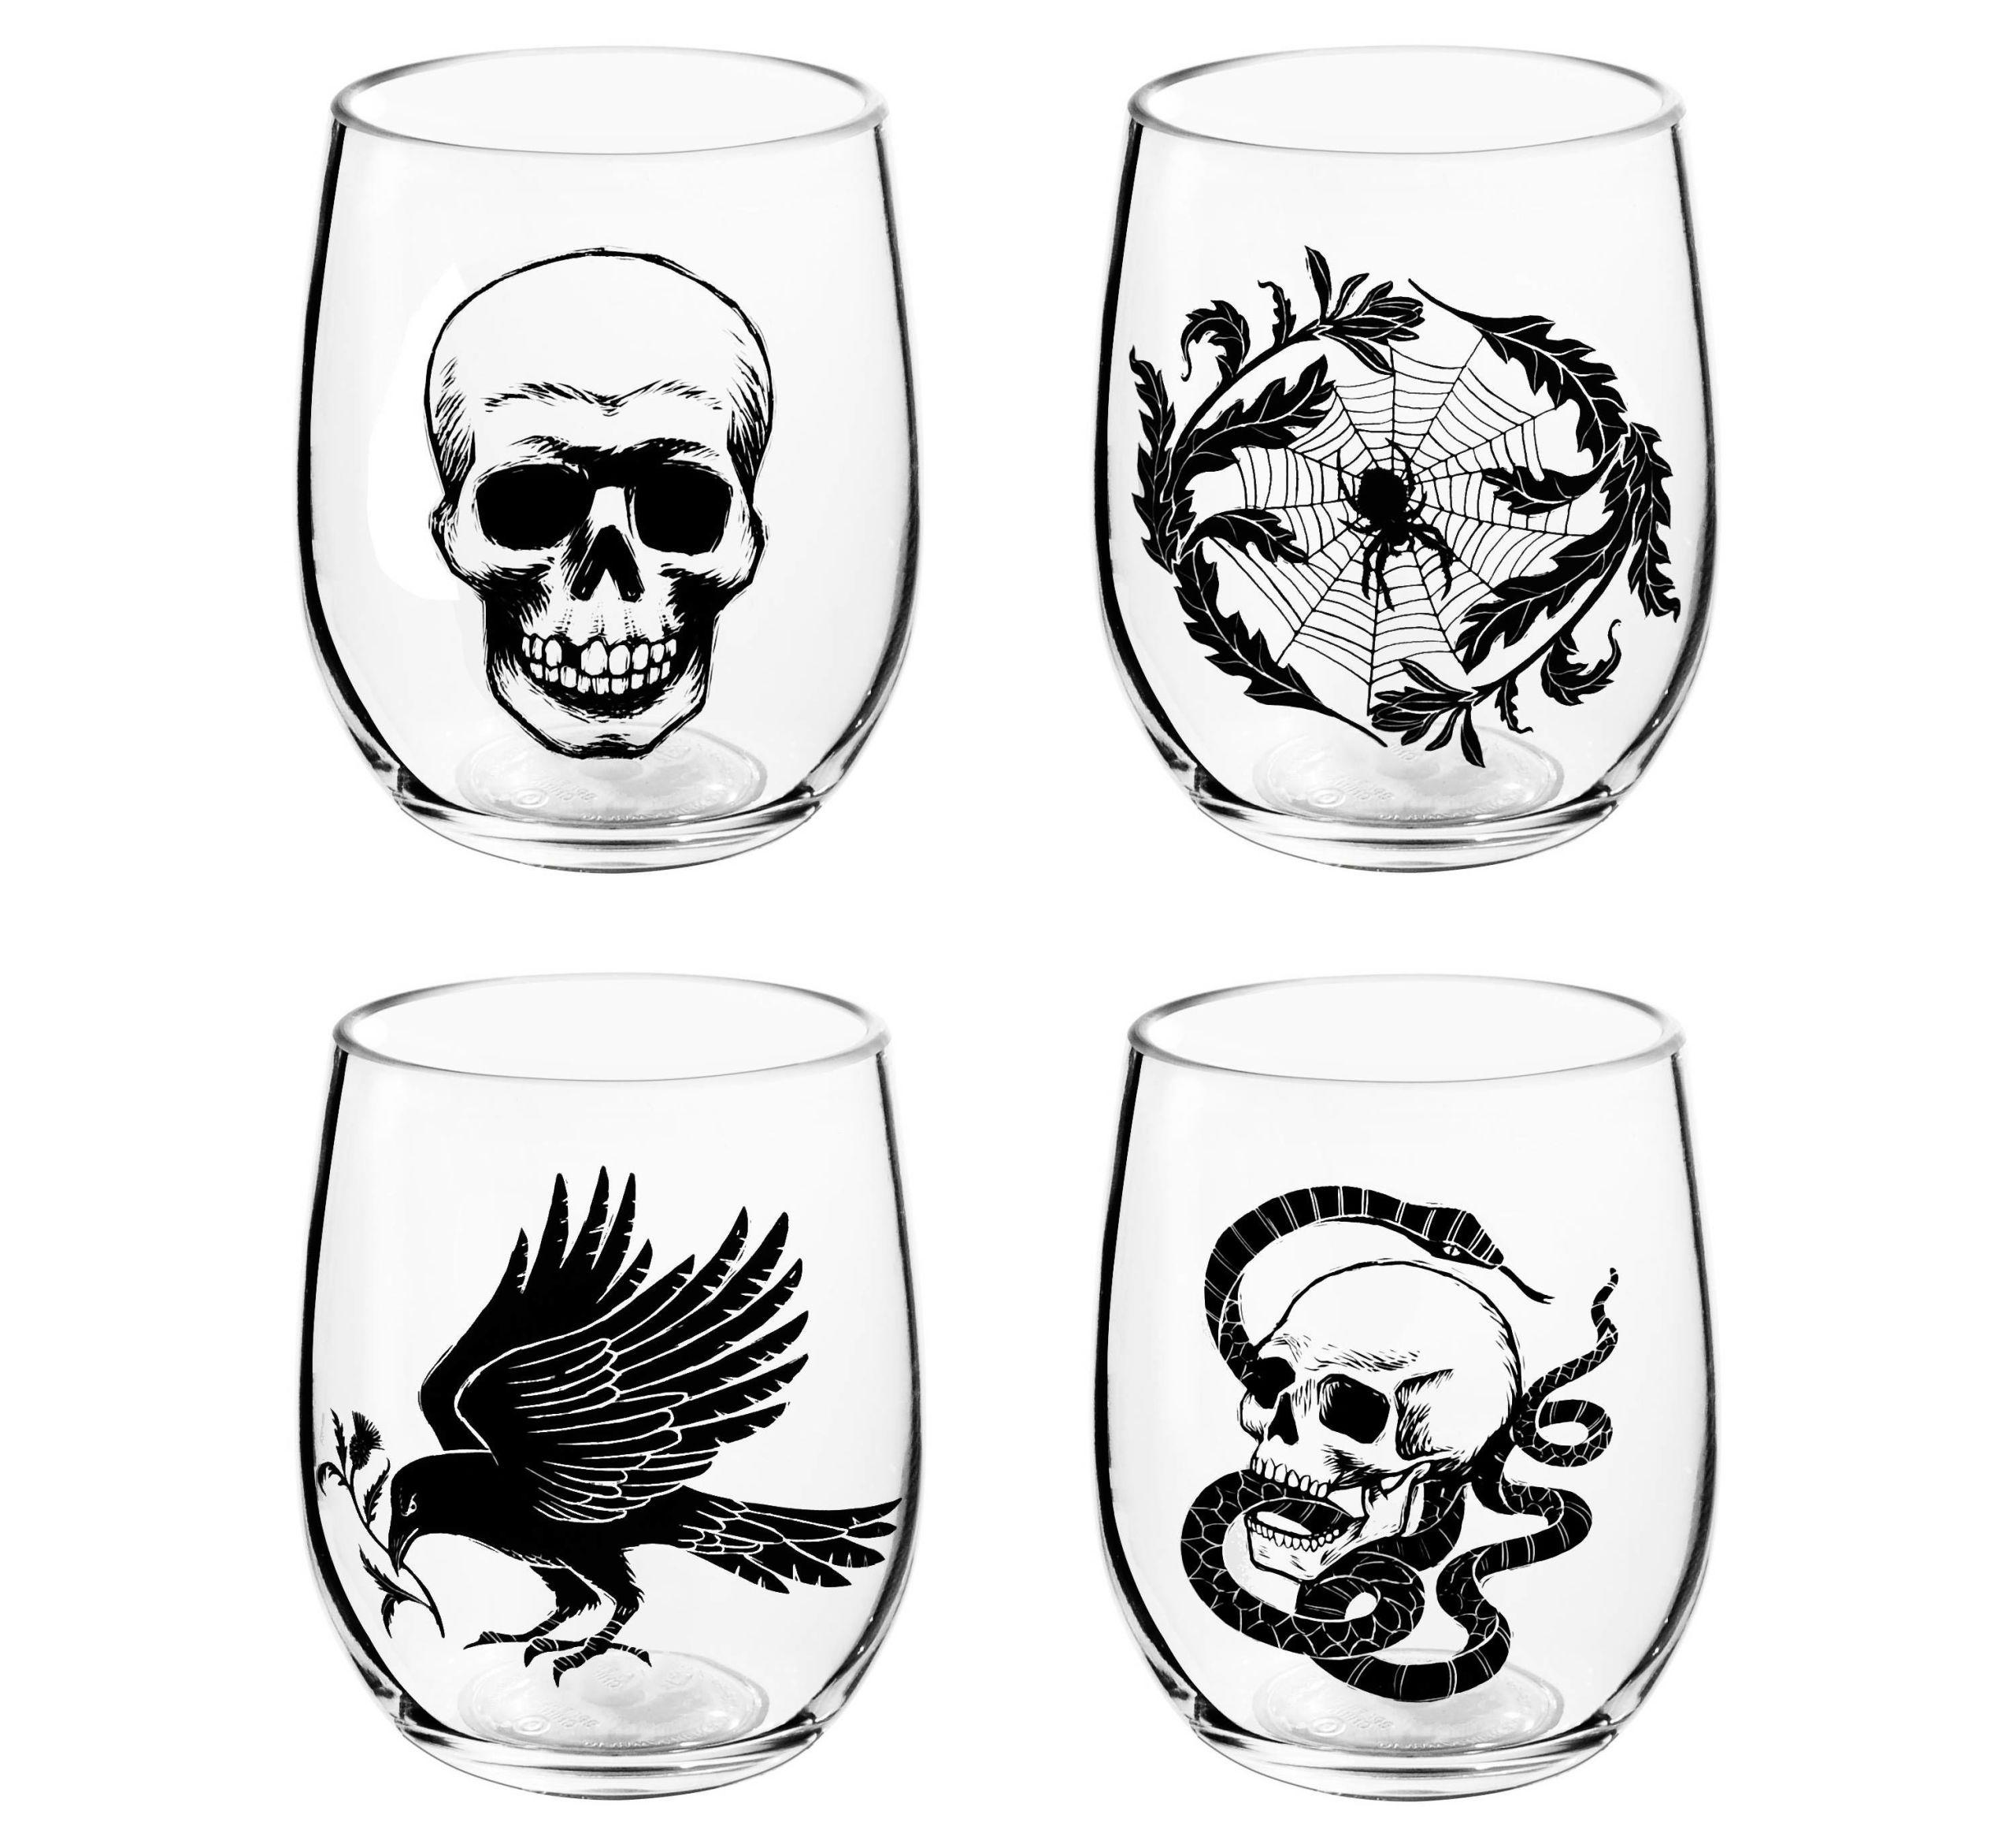 """<p><span>These spooky glasses feature a skull, raven, skull and snake, and a spider web. Order a few and serve your Hallow's Eve <a href=""""http://www.delish.com/holiday-recipes/halloween/g3044/halloween-punch/"""" rel=""""nofollow noopener"""" target=""""_blank"""" data-ylk=""""slk:punch"""" class=""""link rapid-noclick-resp"""">punch</a> in 'em.</span></p><p><strong>Price</strong><span>: $8</span></p><p><a href=""""https://www.target.com/p/4ct-halloween-nocturne-stemless-wine-glass-set-skull-spider-snake-raven-hyde-and-eek-boutique-153/-/A-52291146#lnk=newtab"""" rel=""""nofollow noopener"""" target=""""_blank"""" data-ylk=""""slk:Get them here."""" class=""""link rapid-noclick-resp"""">Get them here.</a></p>"""